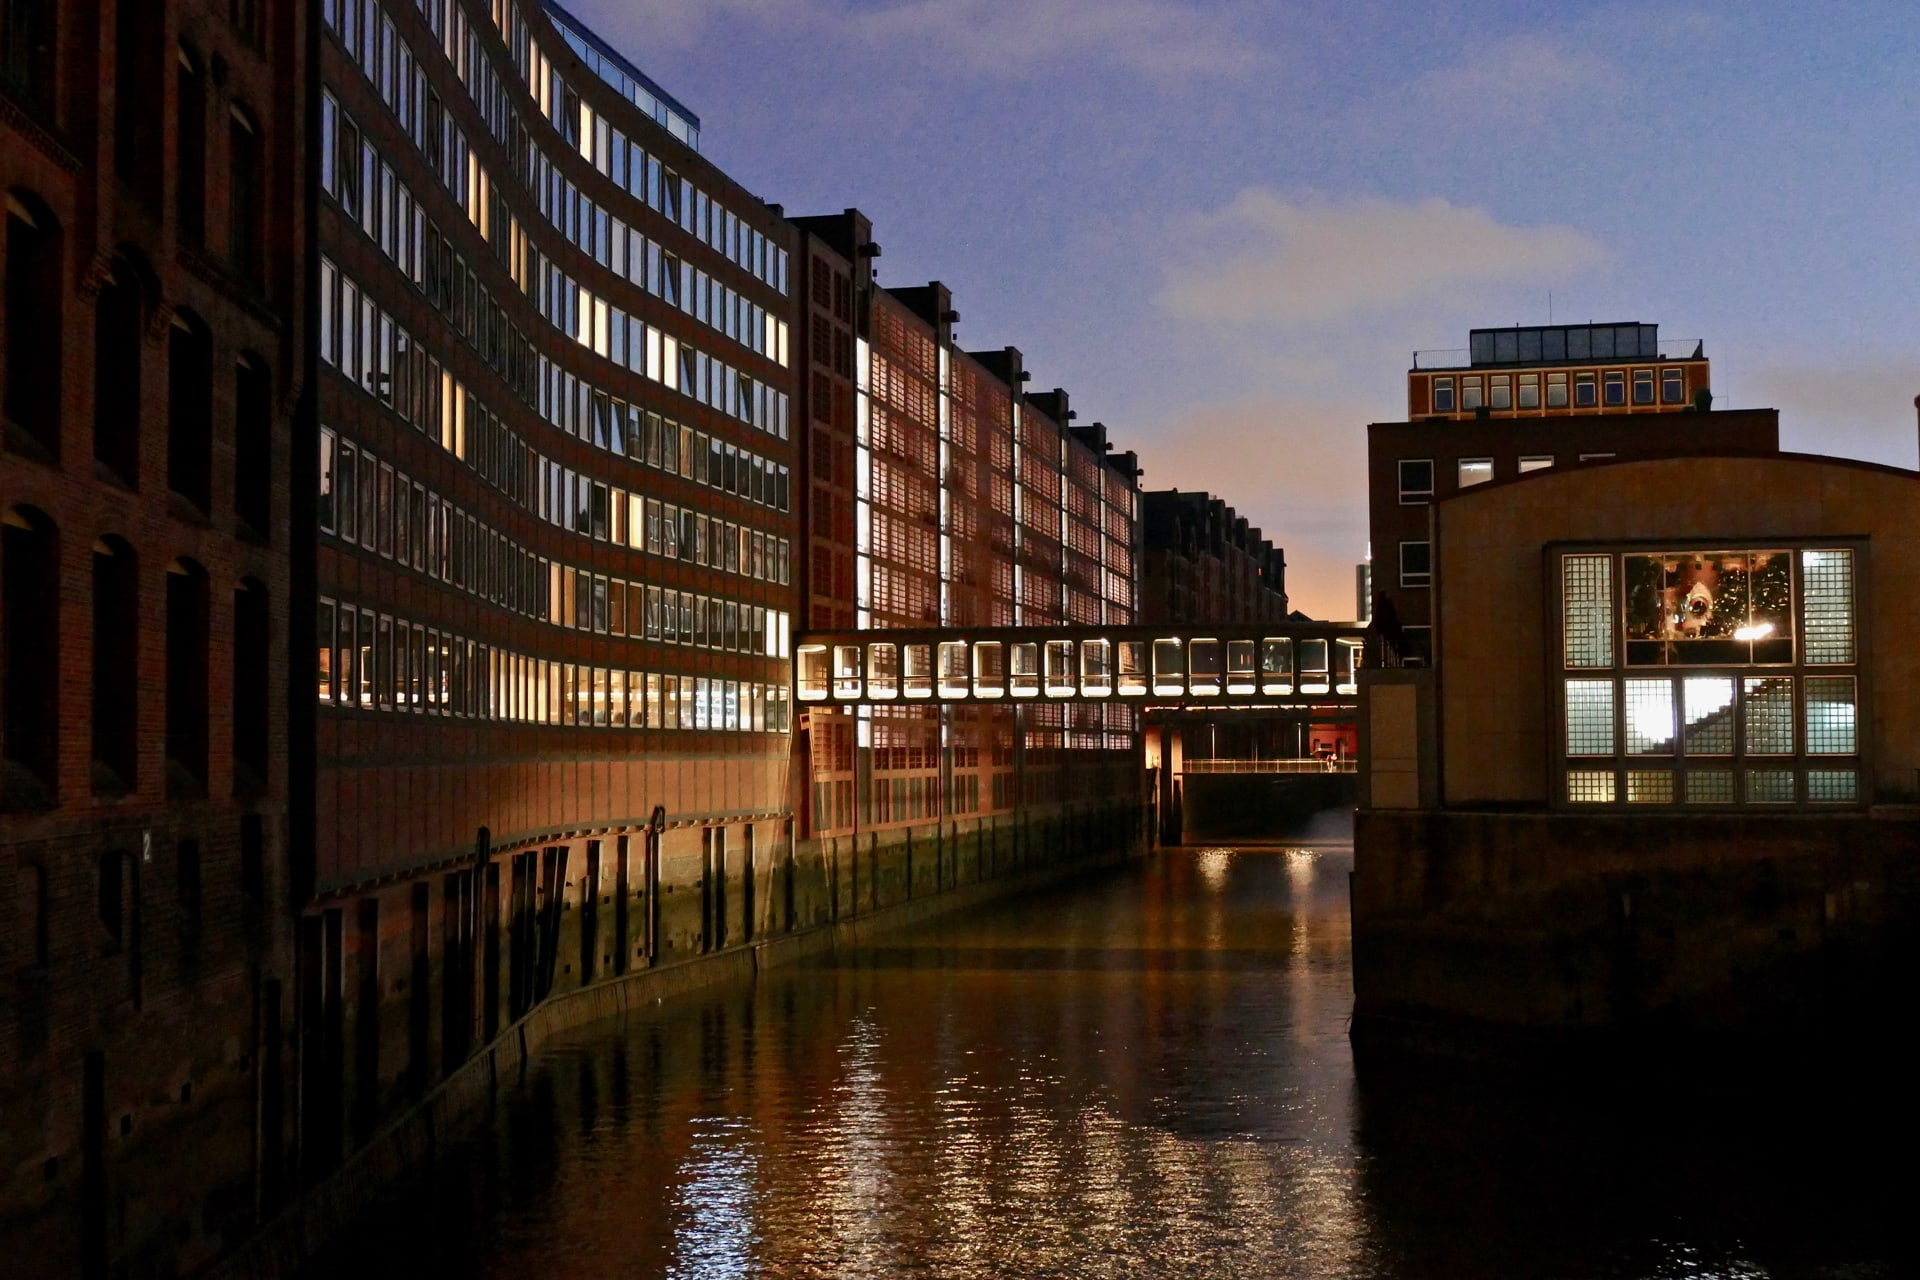 Evening in Speicherstadt